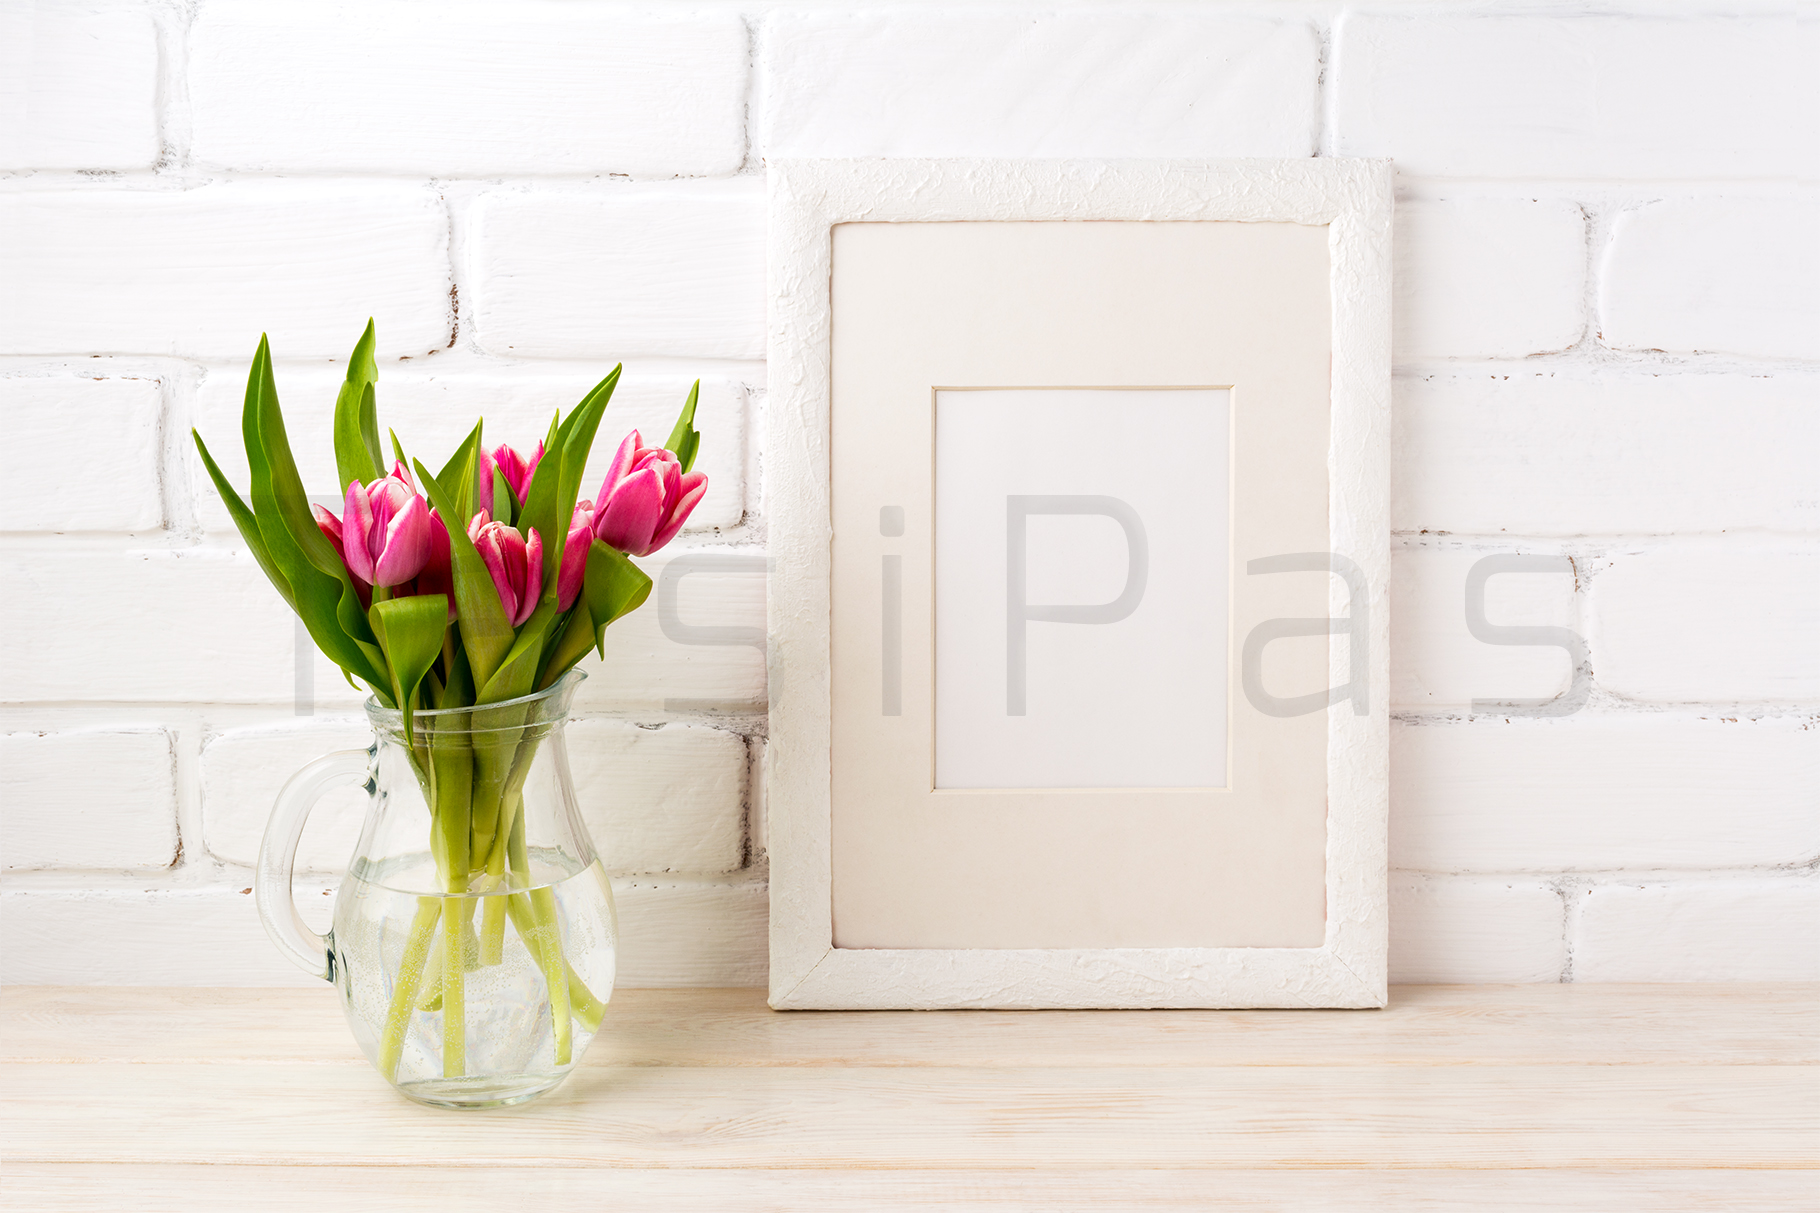 White frame mockup with magenta pink tulips bouquet in glass jug near white painted brick wall.  example image 2